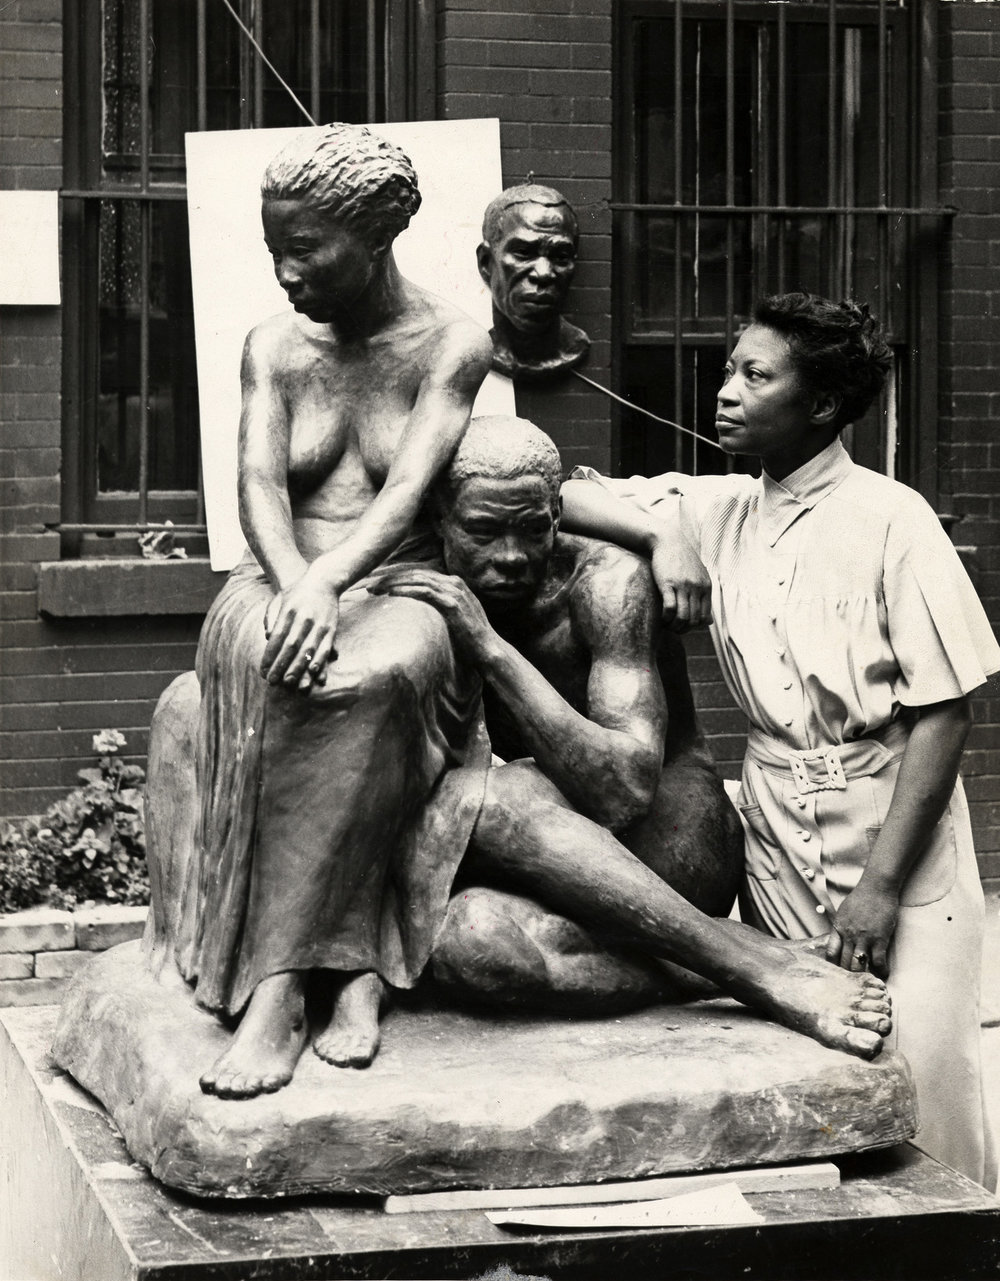 augusta-savage-with-one-of-her-sculptures_around-1938.jpg